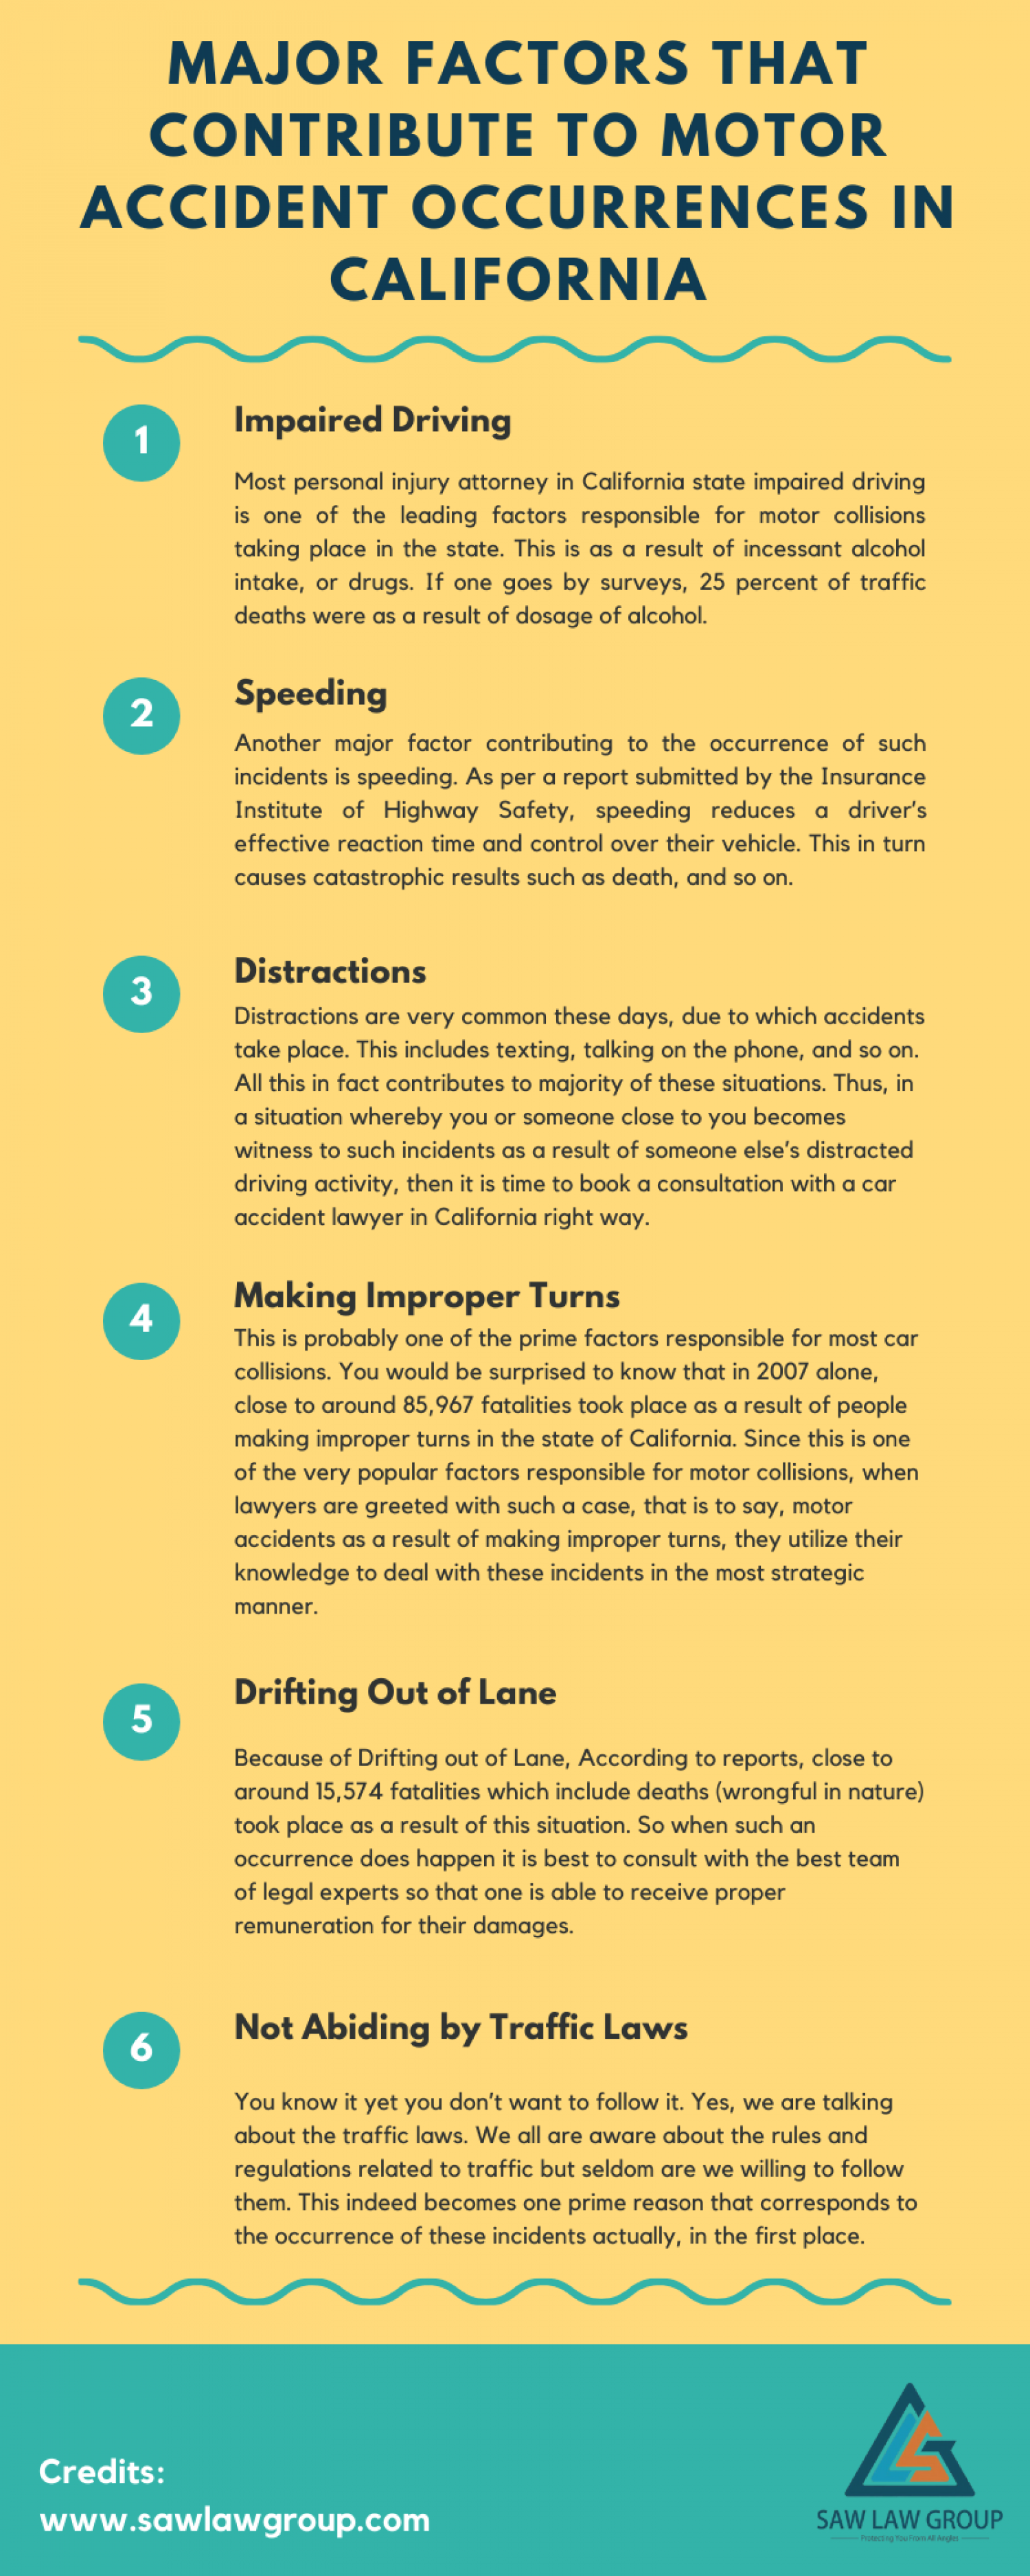 Major Factors that Contribute to Motor Accident Occurrences in California Infographic